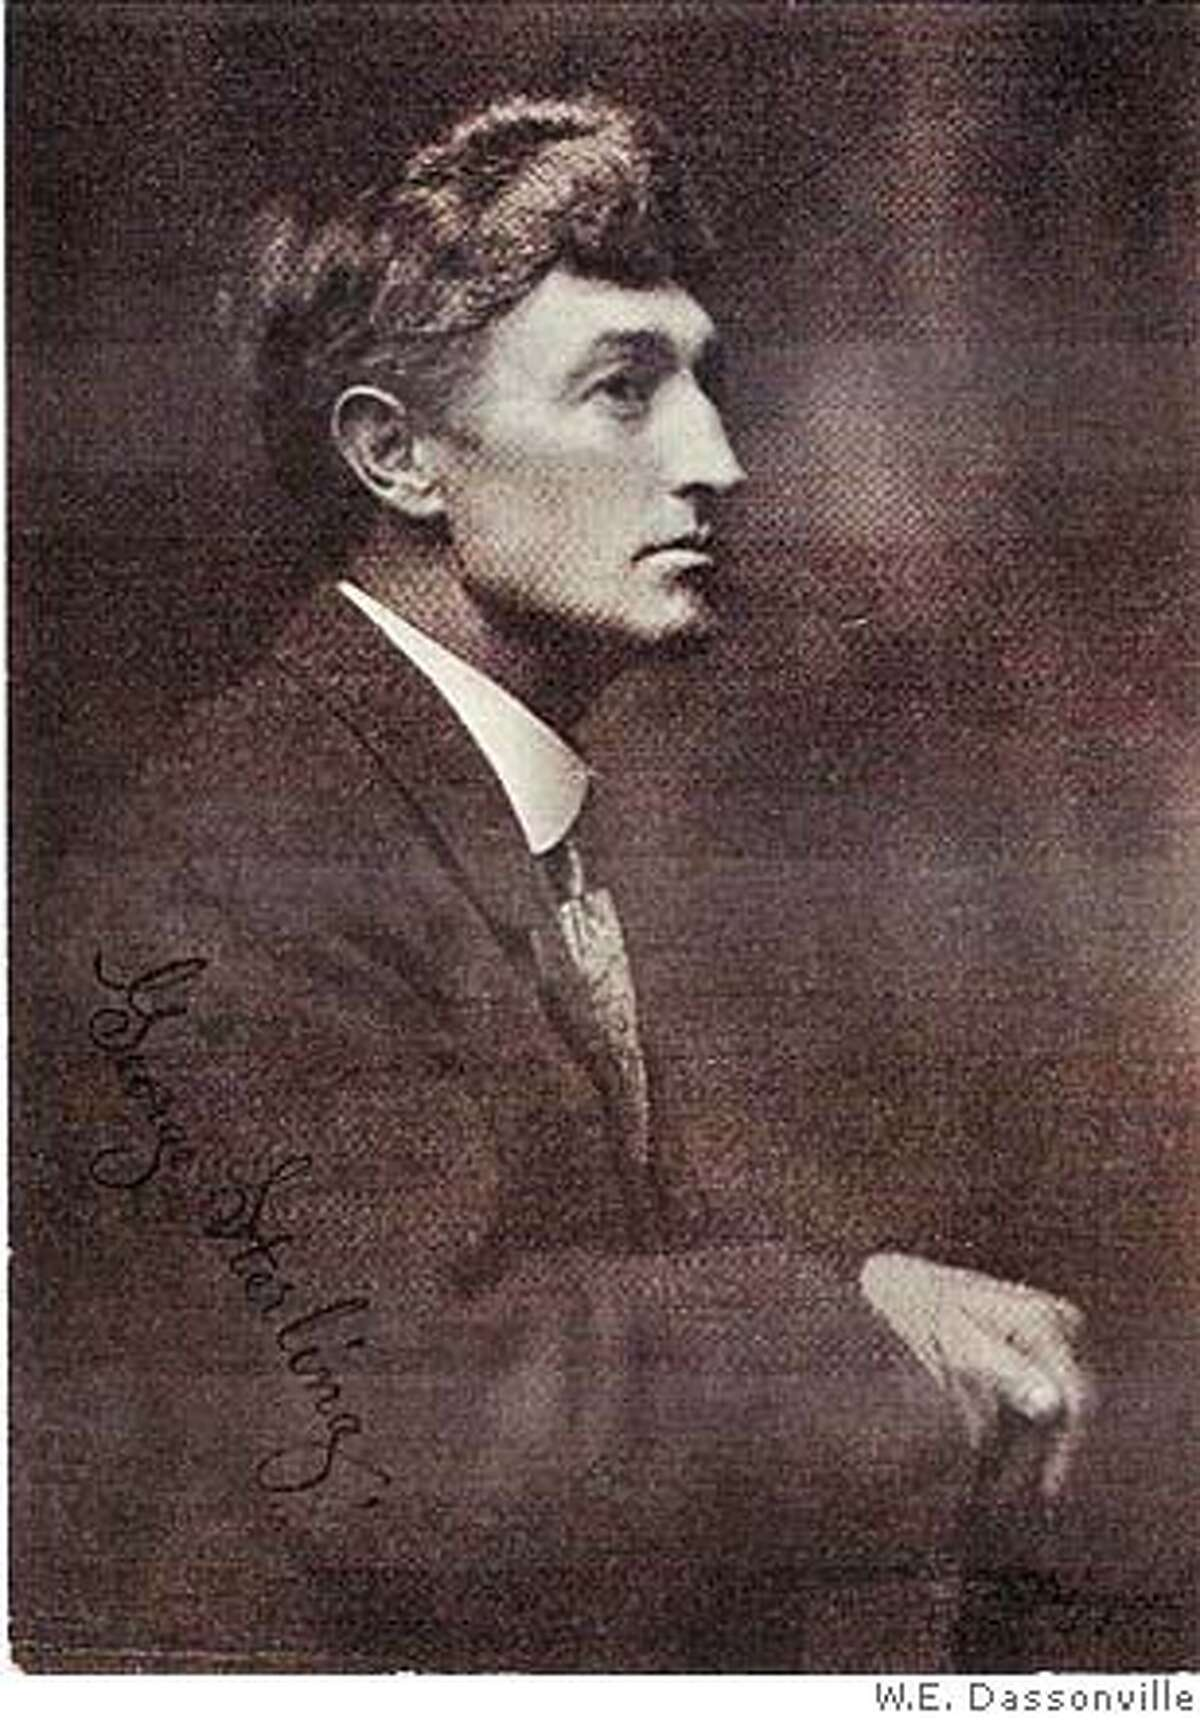 George Sterling taken by the famous California portrait artst W.E. Dassonville at about the time Wizardry was published.